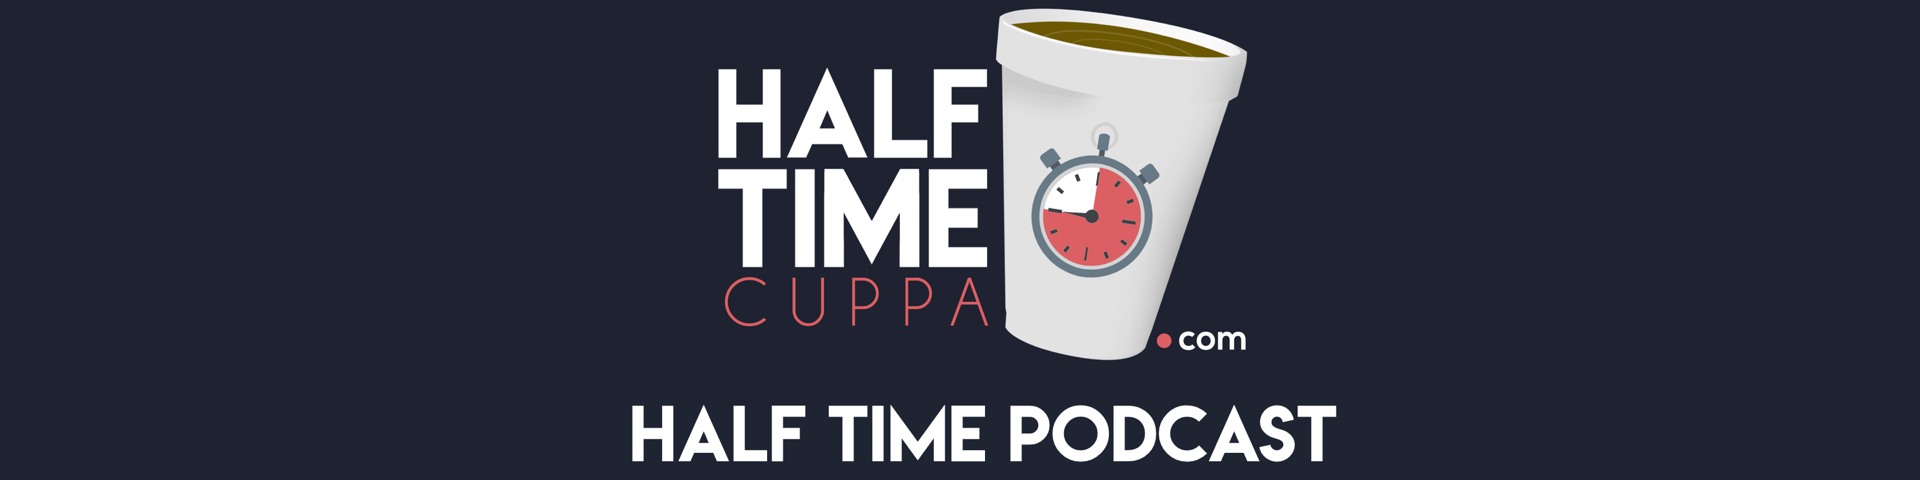 Half Time Podcast #3 – Will Gareth Southgate Remain As England Manager After The 2018 World Cup?